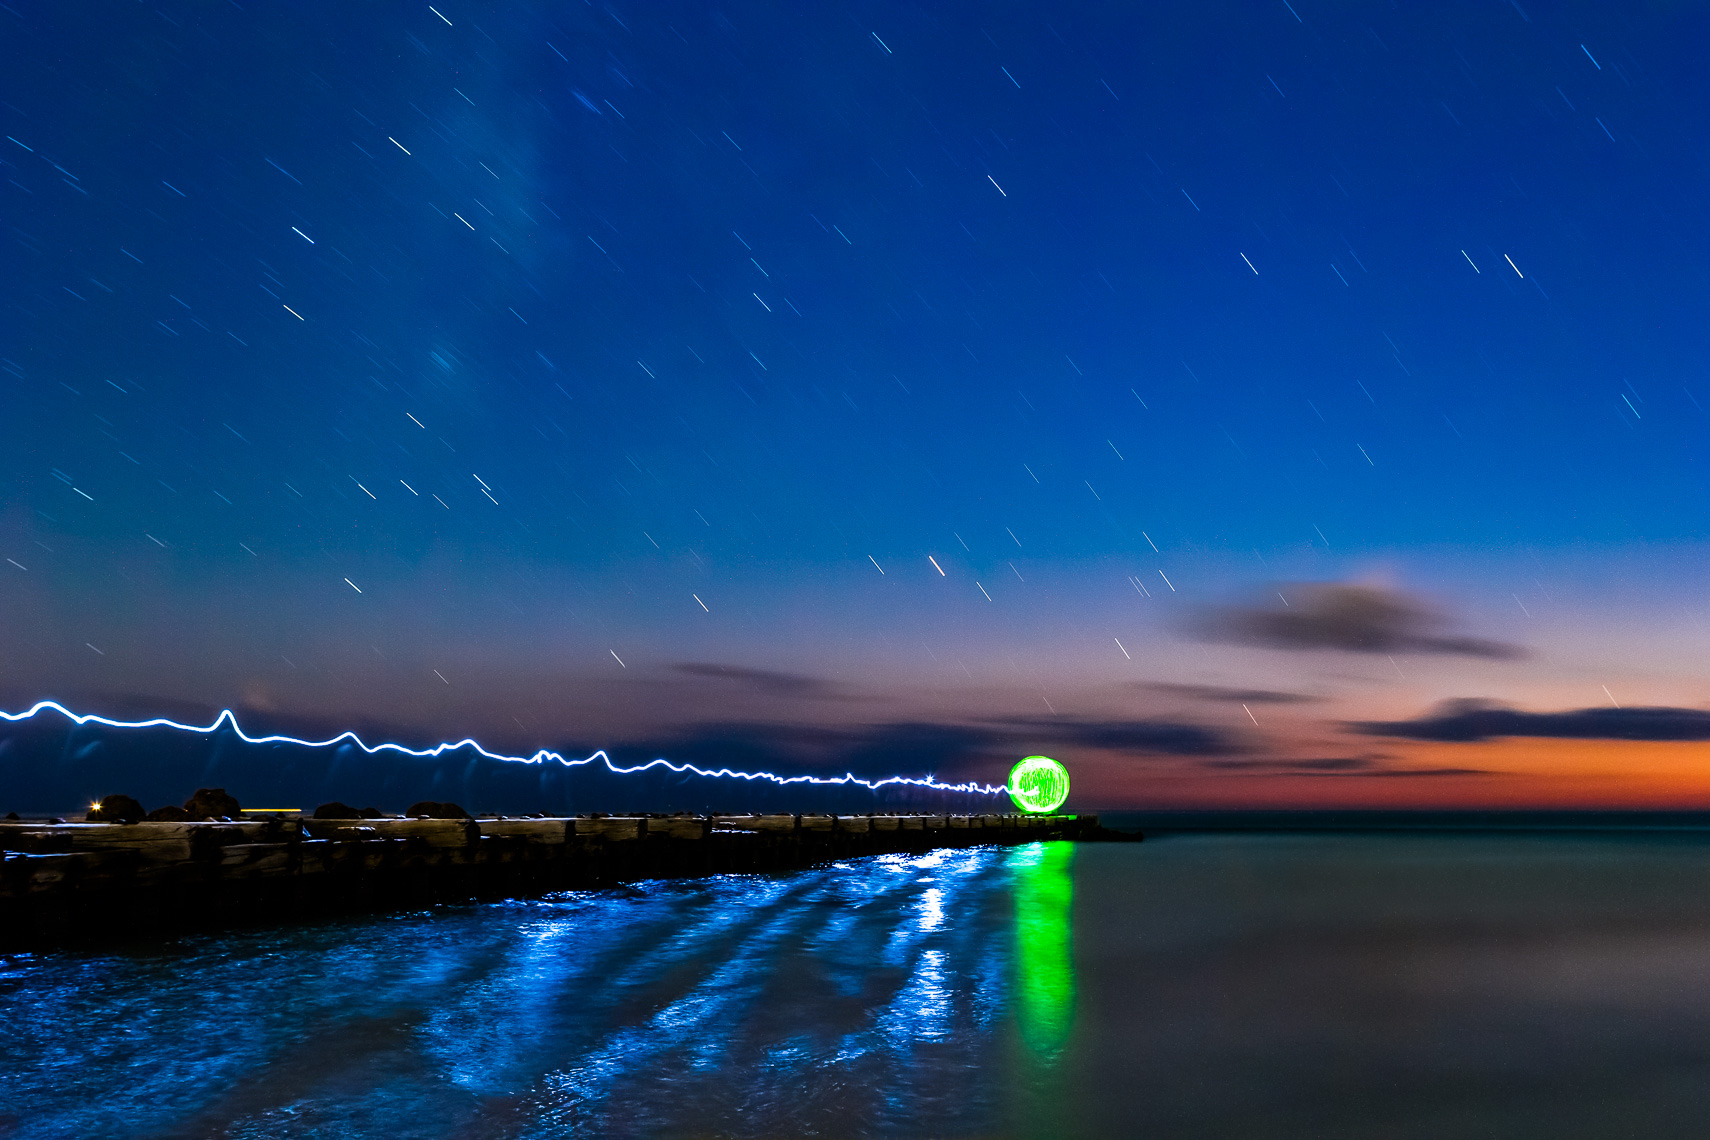 Sunset and Light Painting on the Gulf of Mexico